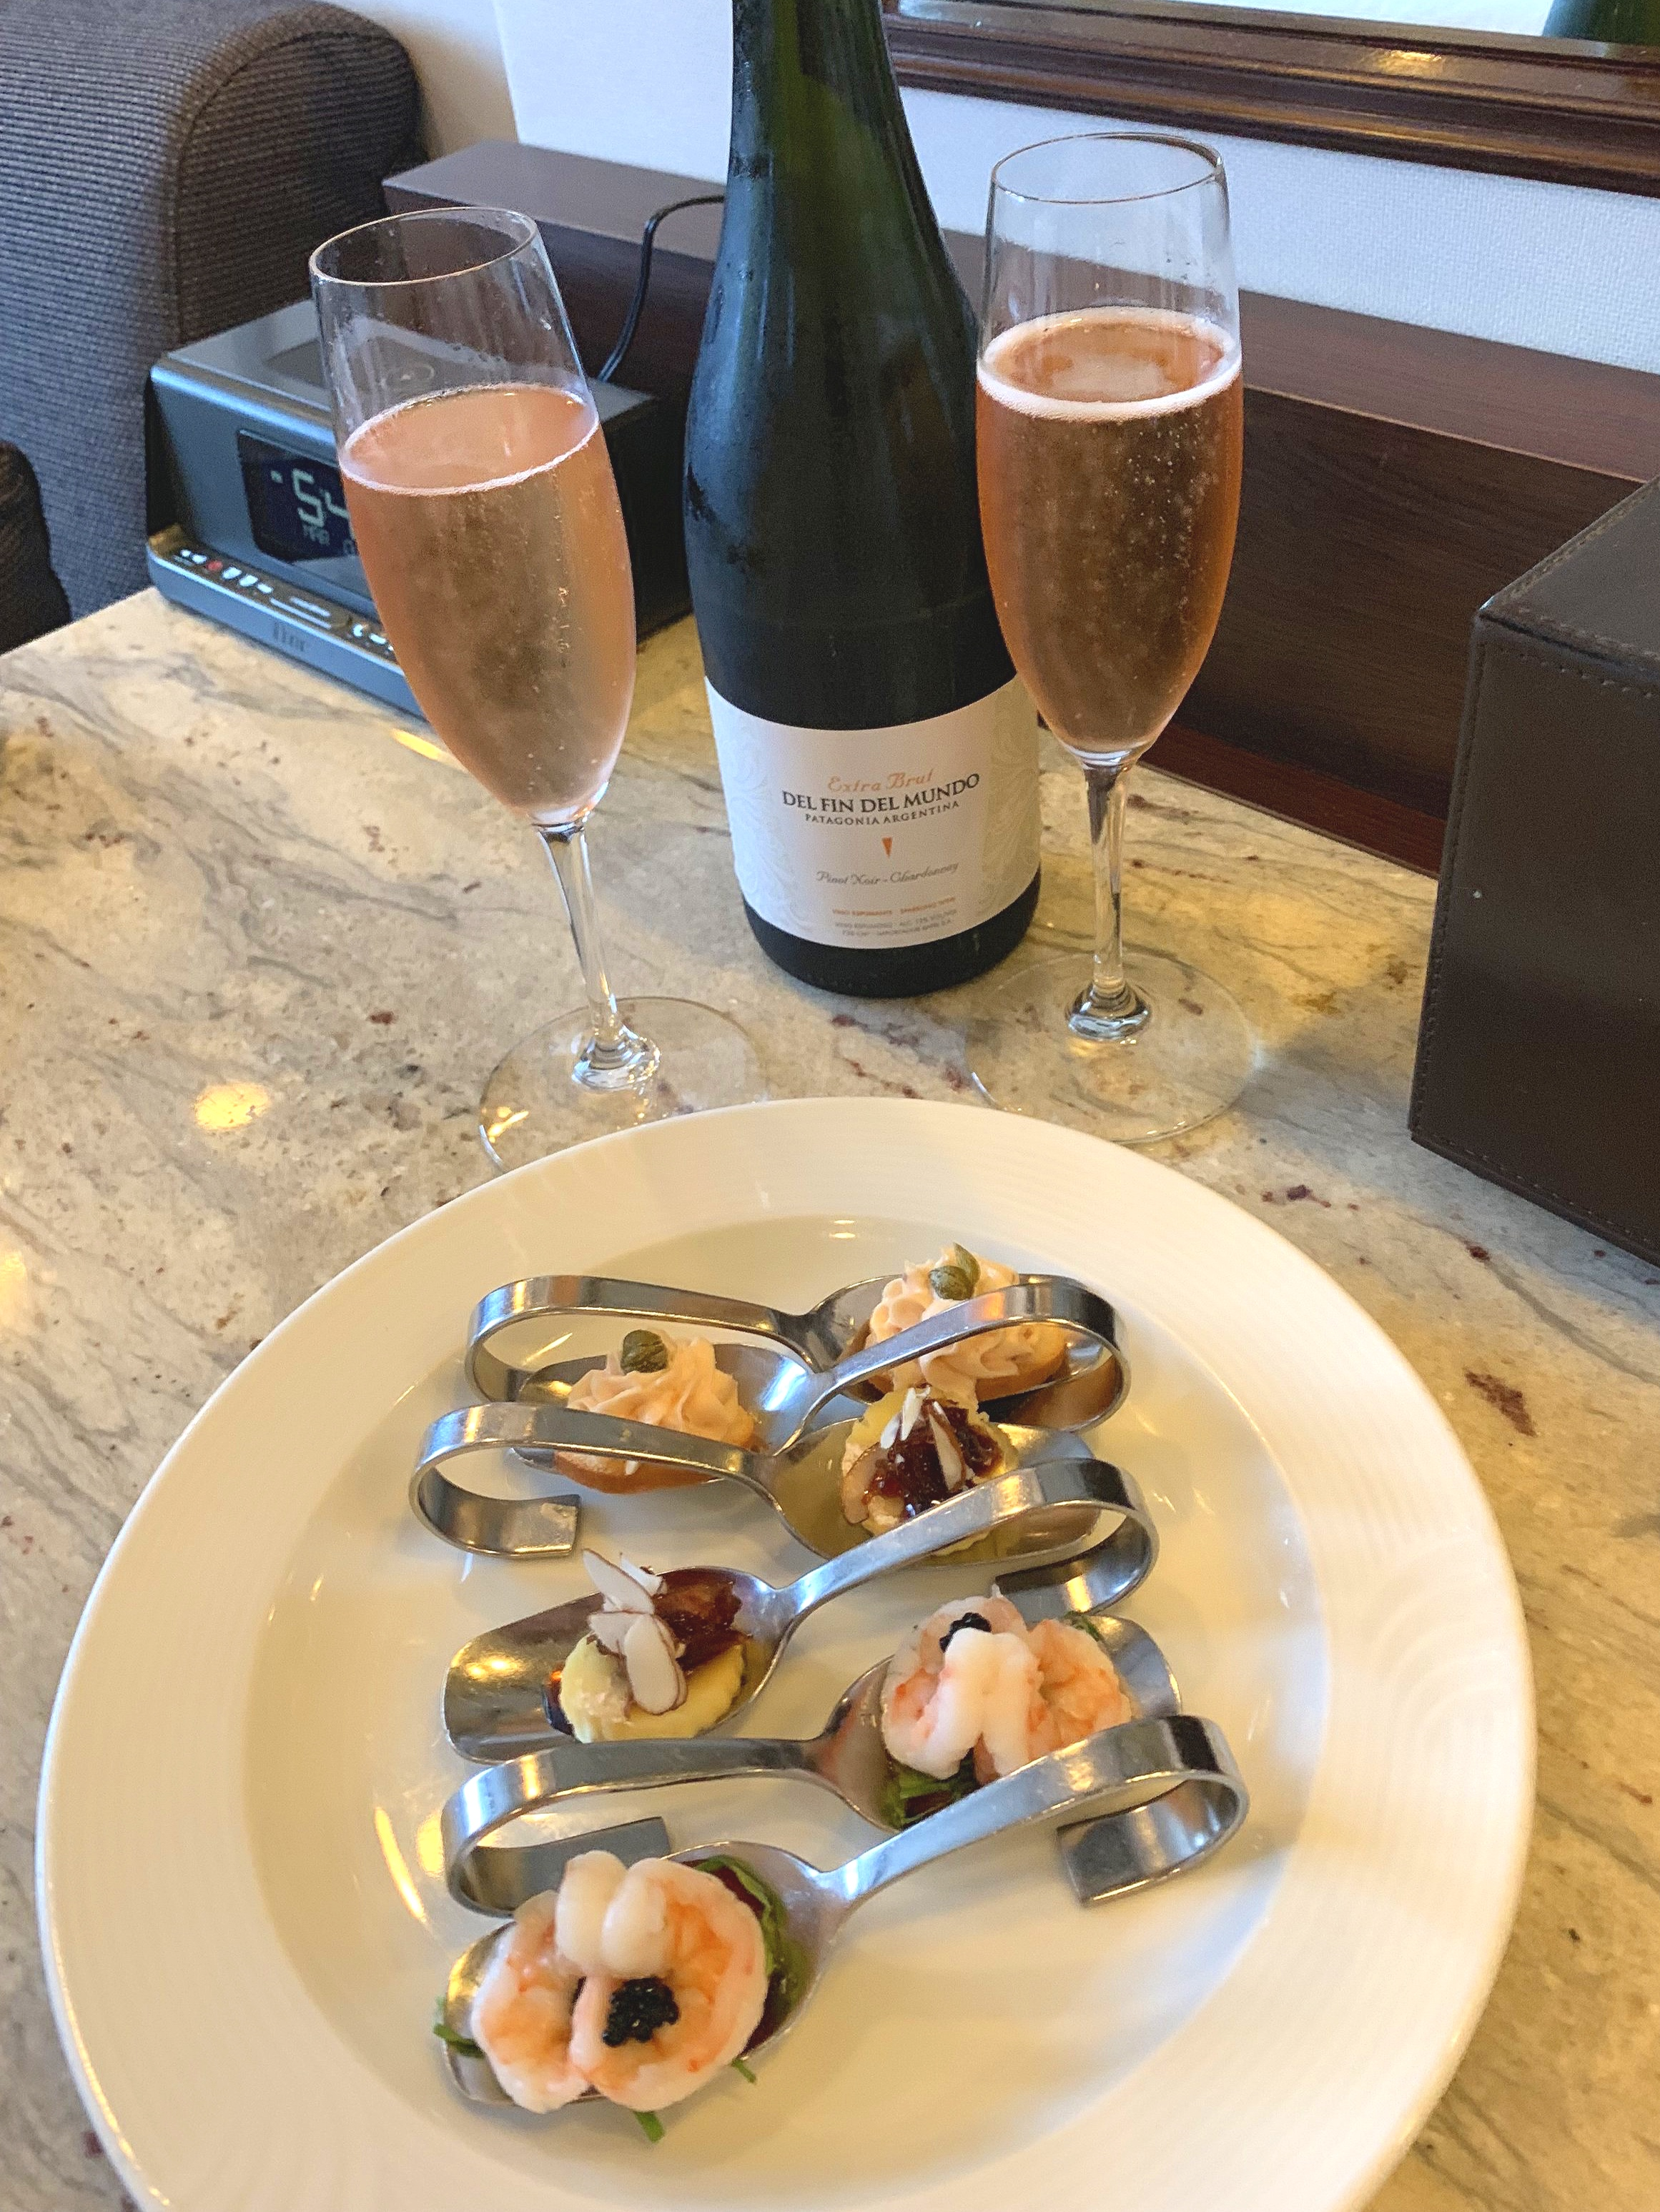 Champagne and canapés were waiting for us in our suite upon our return.